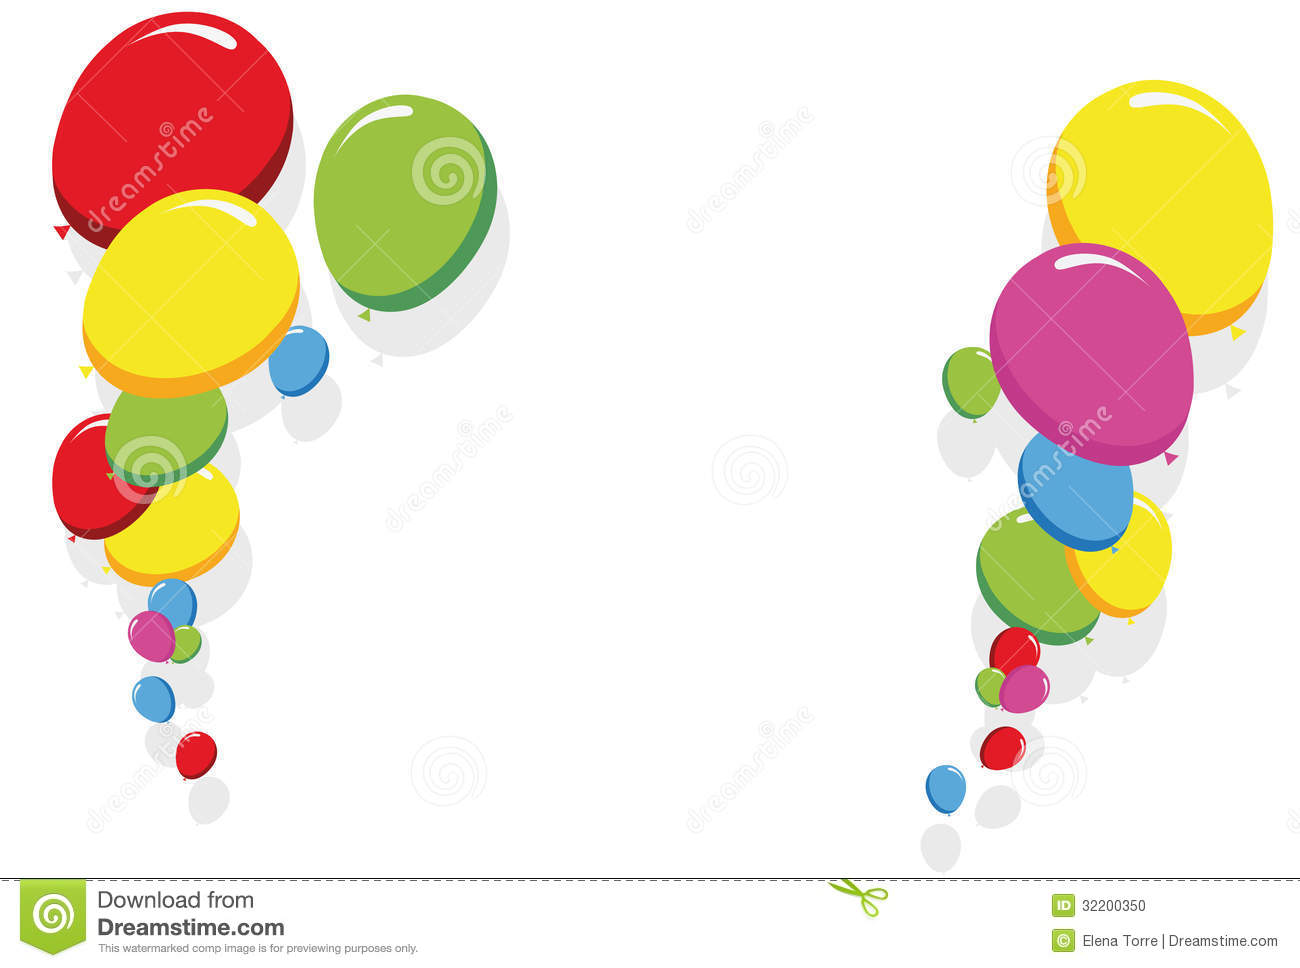 birthday card borders free ; colorful-balloons-border-frame-illustration-birthday-party-cards-32200350